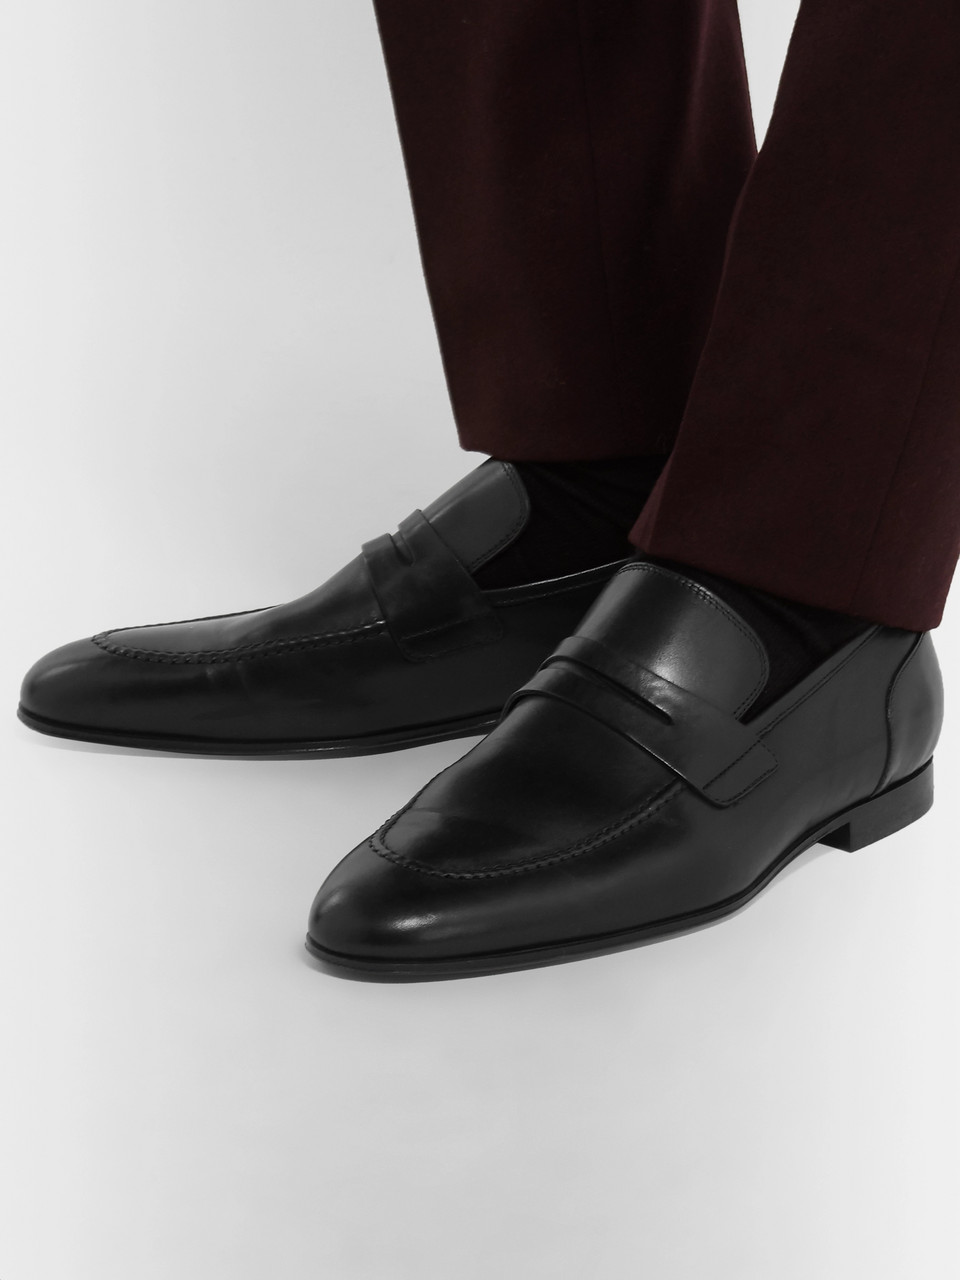 091e22d3a9d Paul Smith Chilton Leather Penny Loafers